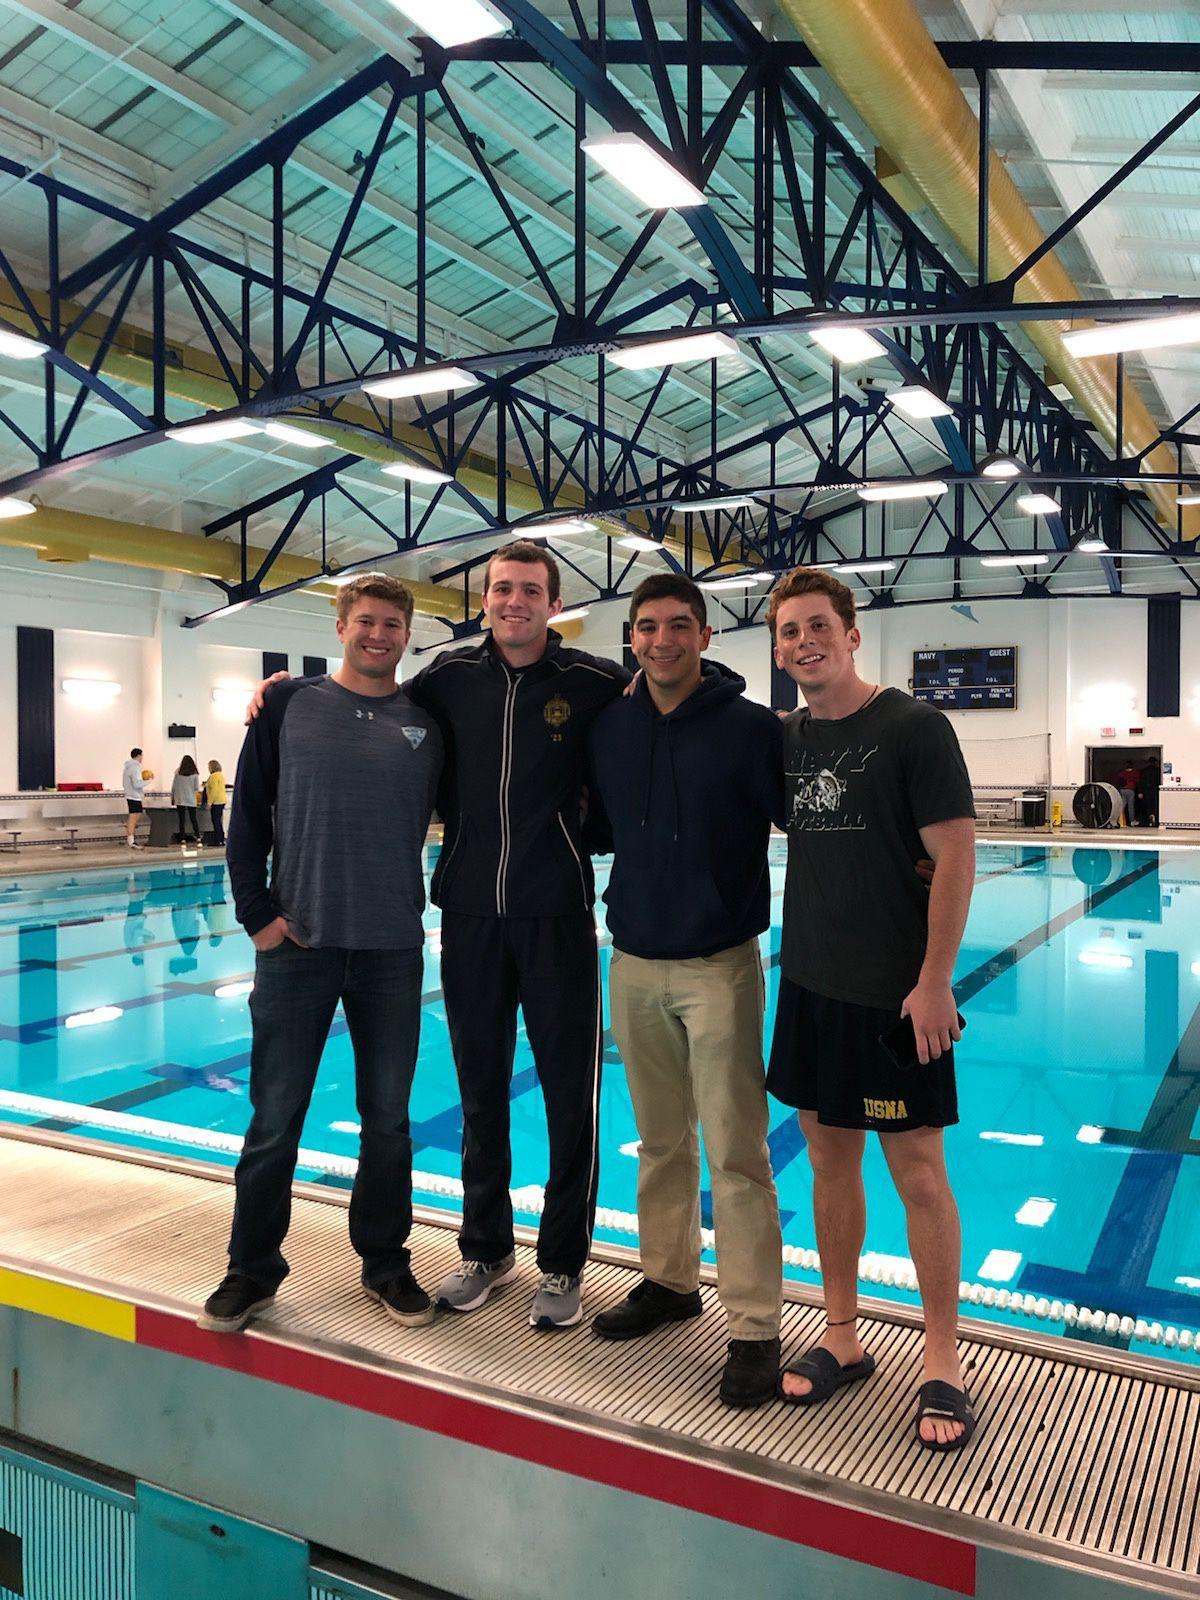 Locals represent United States Naval Academy water polo